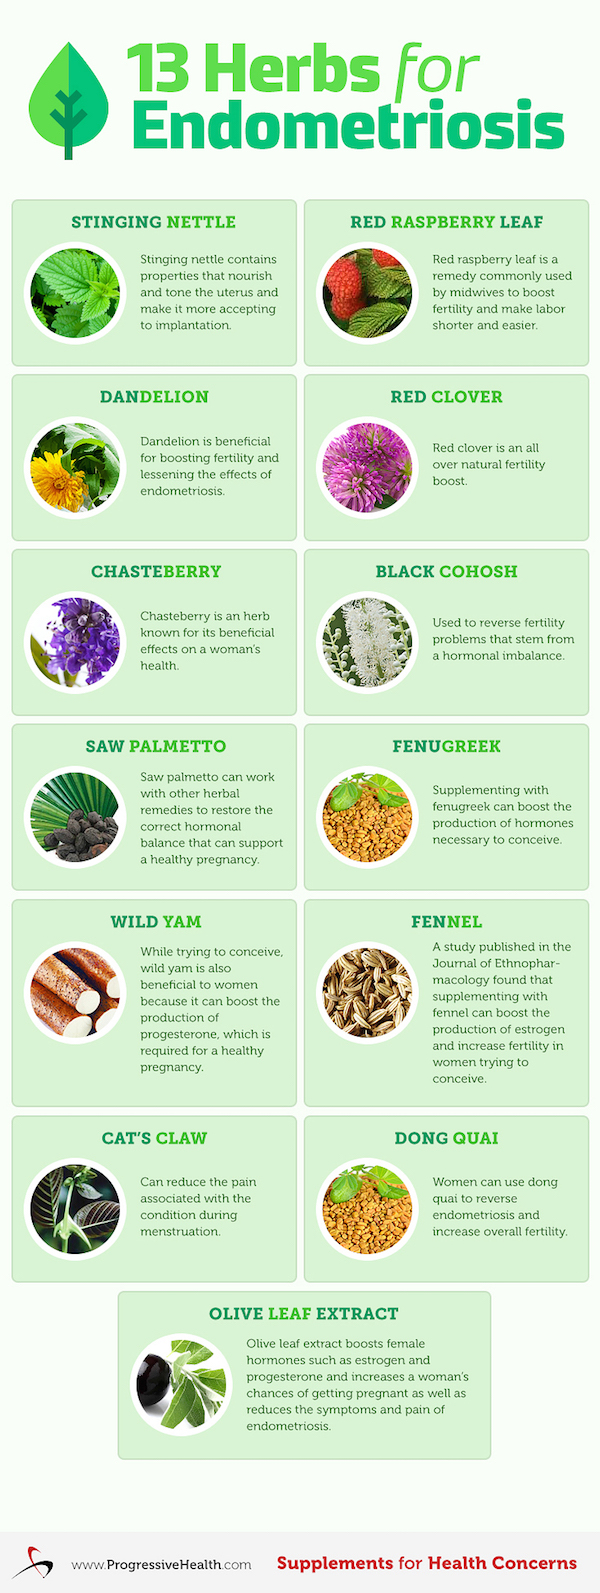 13 Herbs for Endometriosis